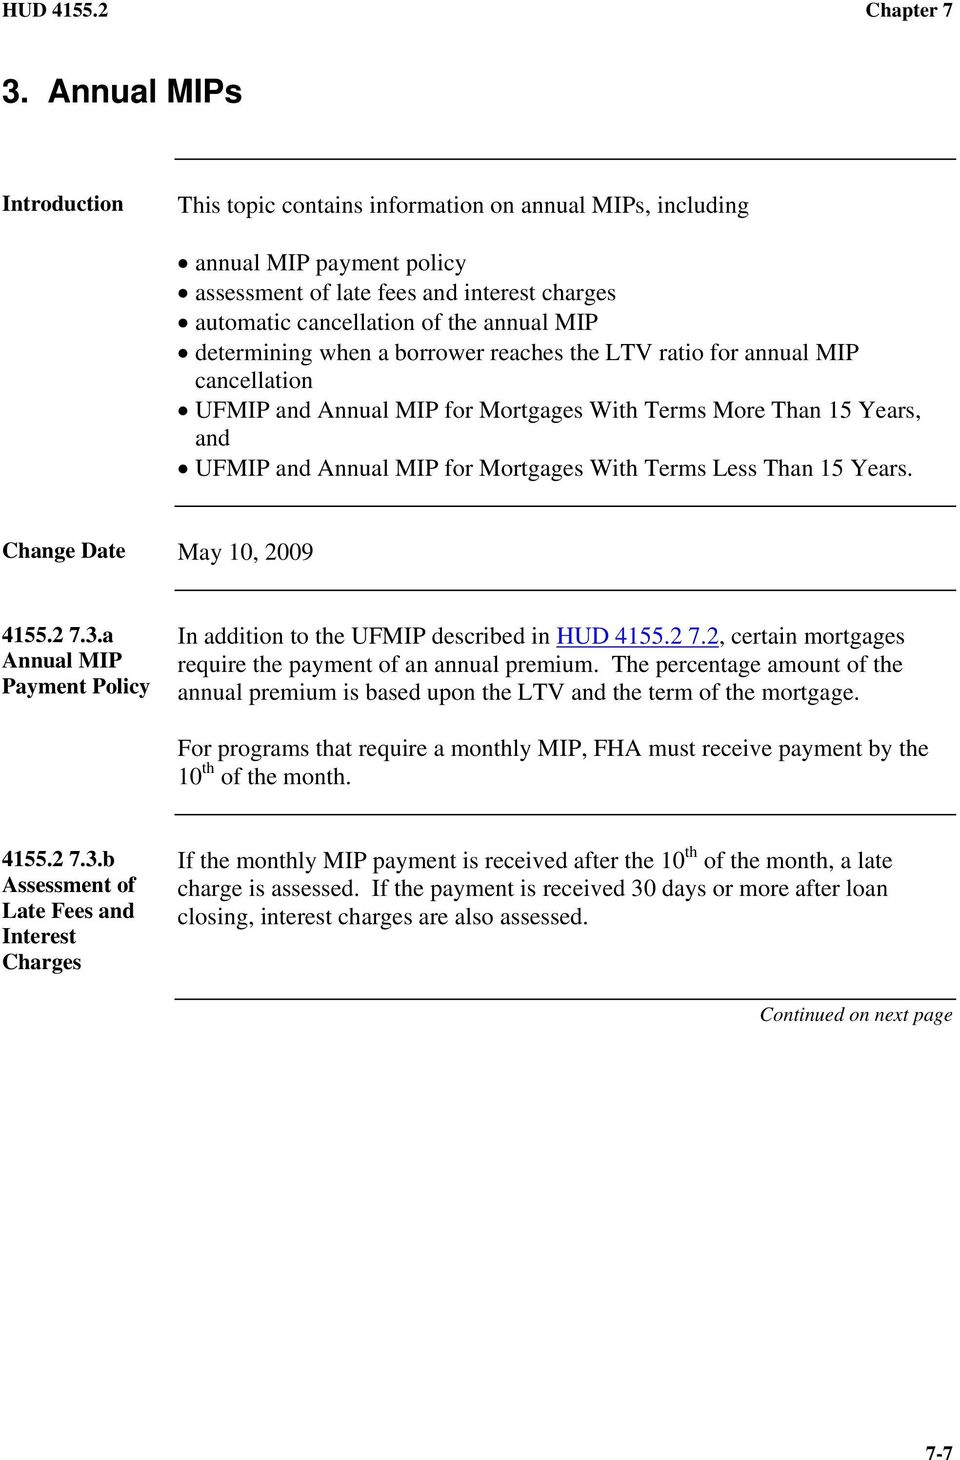 determining when a borrower reaches the LTV ratio for annual MIP cancellation UFMIP and Annual MIP for Mortgages With Terms More Than 15 Years, and UFMIP and Annual MIP for Mortgages With Terms Less